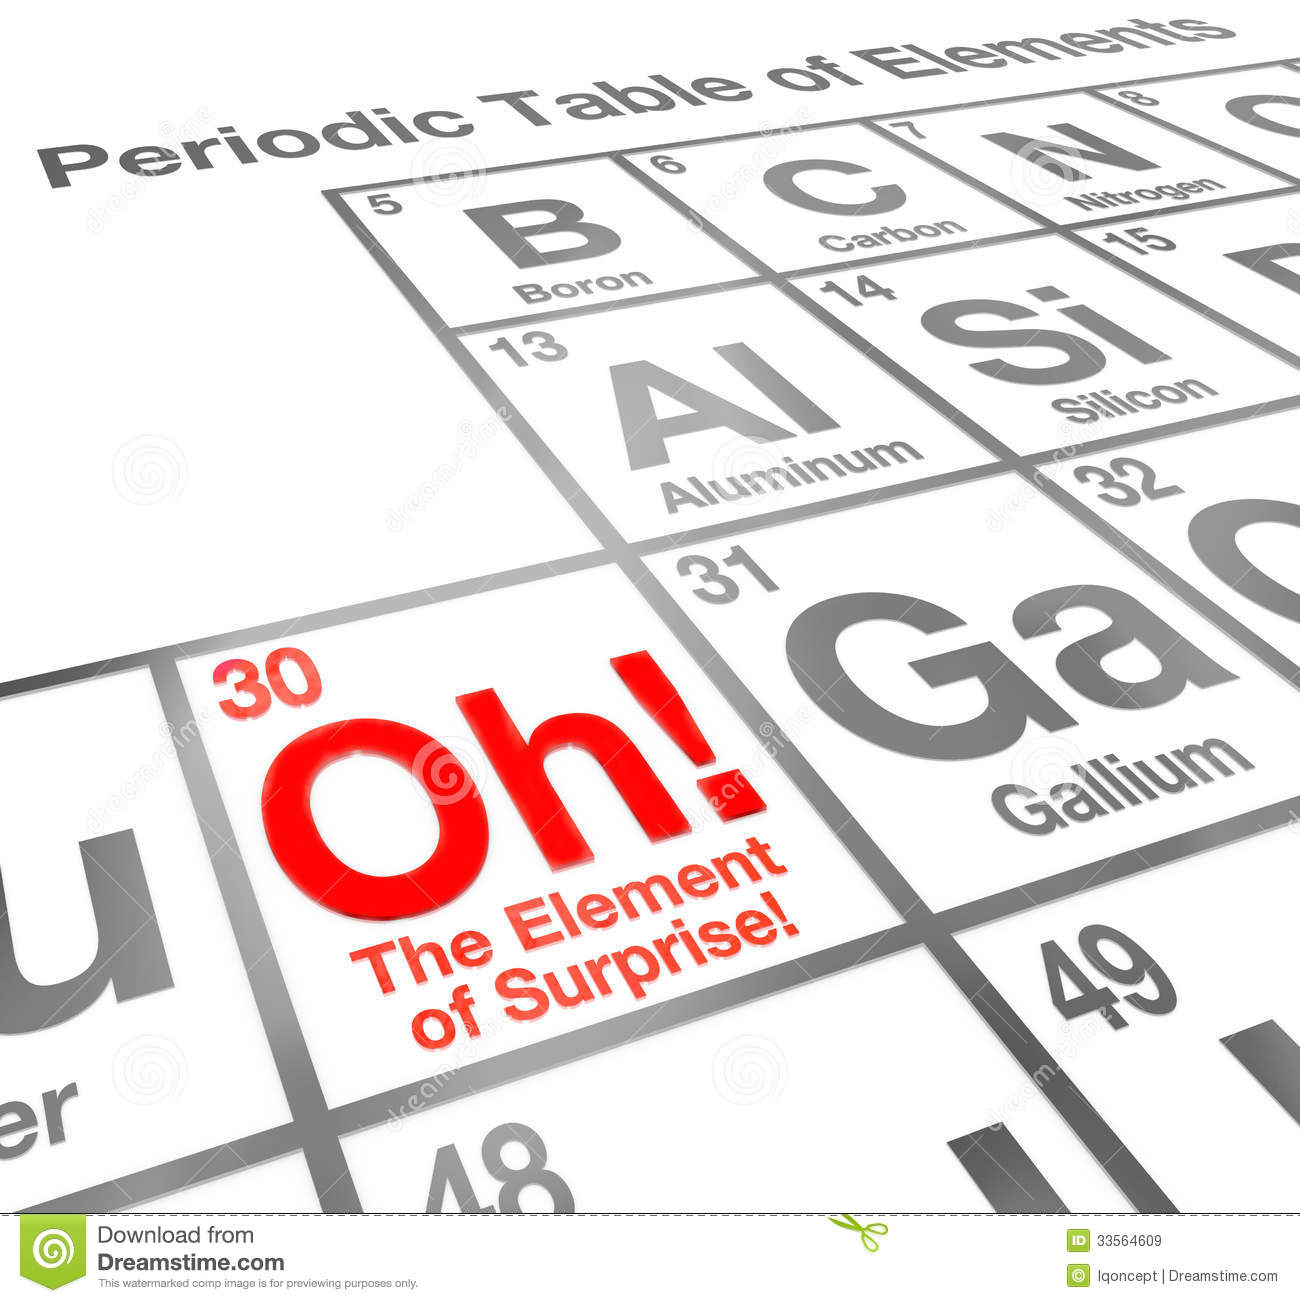 The element of surprise periodic table of elements stock the element of surprise periodic table of elements urtaz Gallery